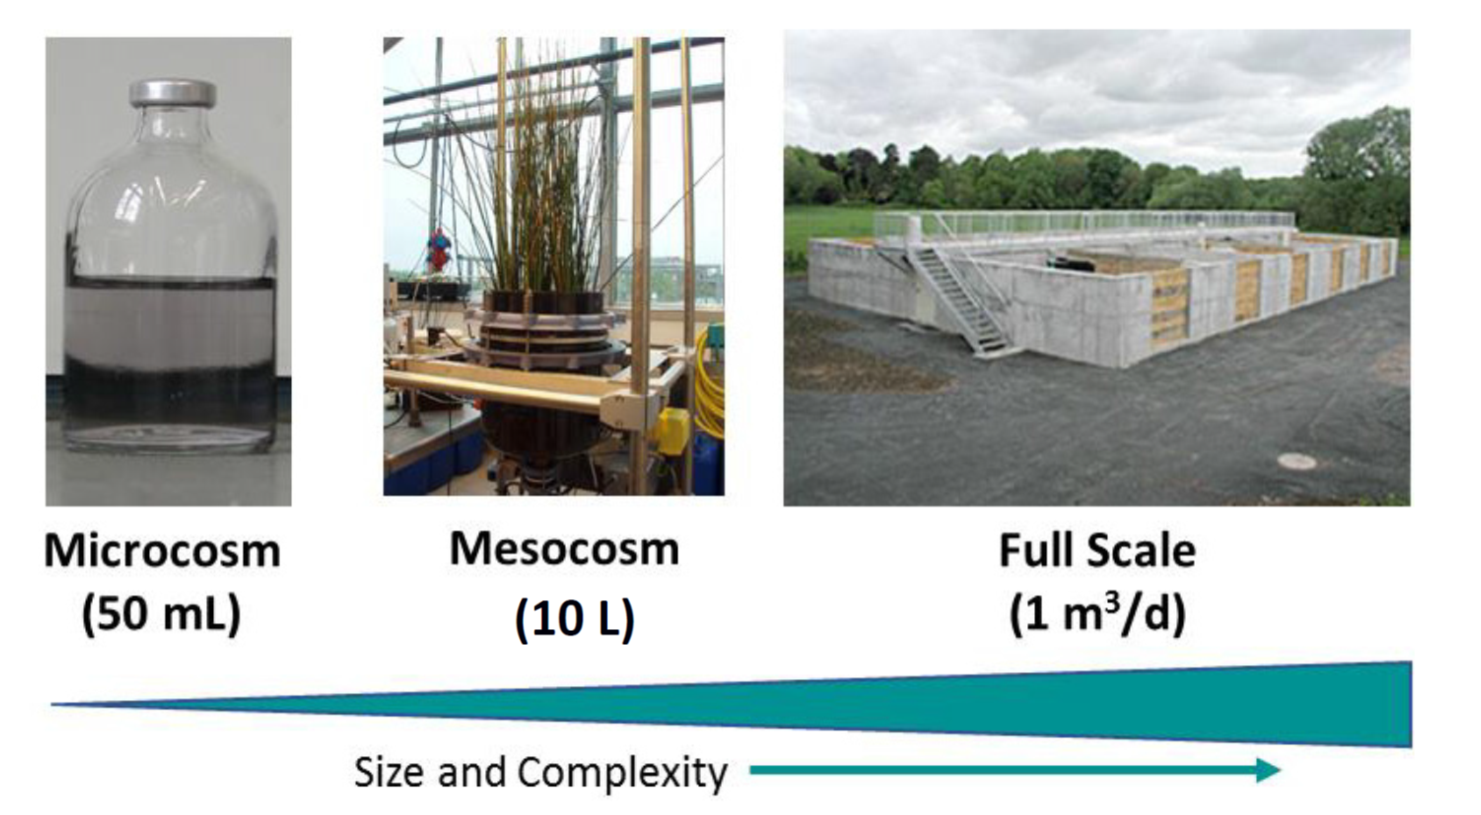 different size and complexity scales: lab microcosms (50 mL), mesocosms (10 L), and pilot-scale